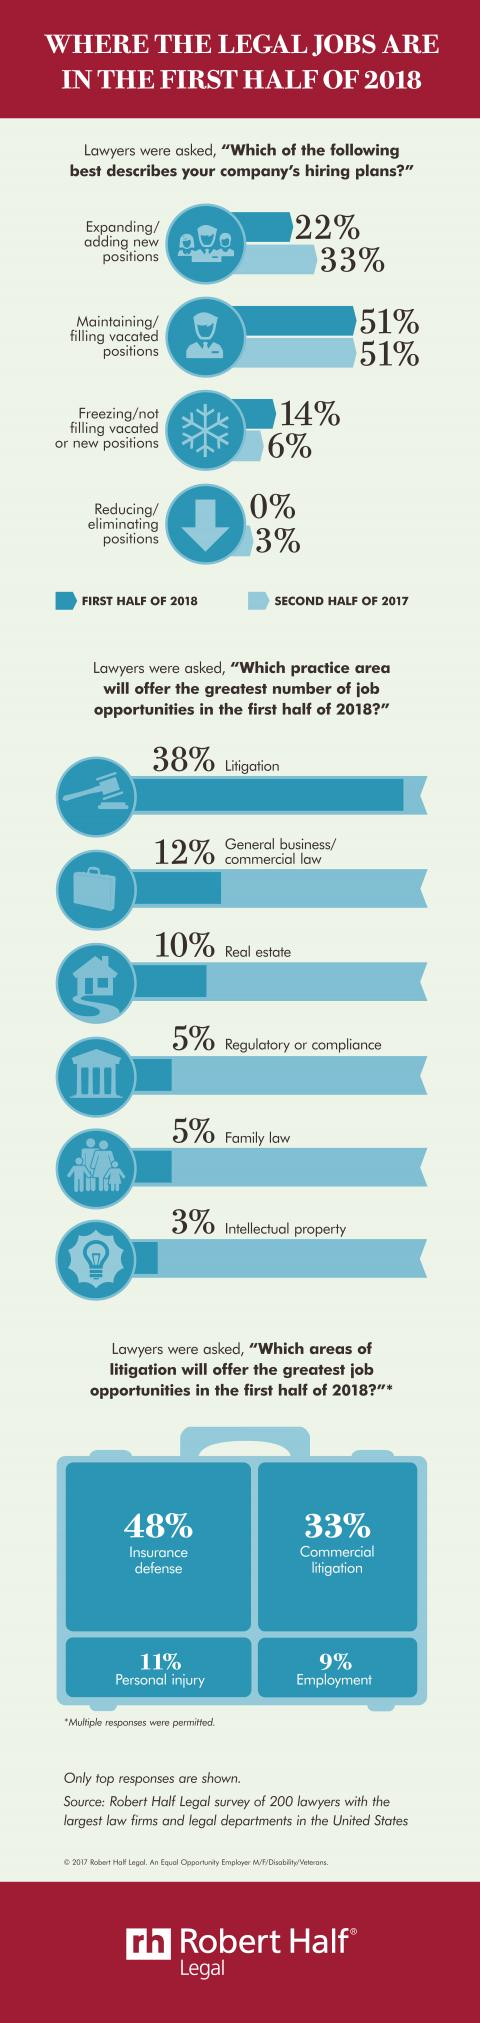 An infographic showing the results of a Robert Half Legal survey about where the legal jobs are in the first half of 2018.